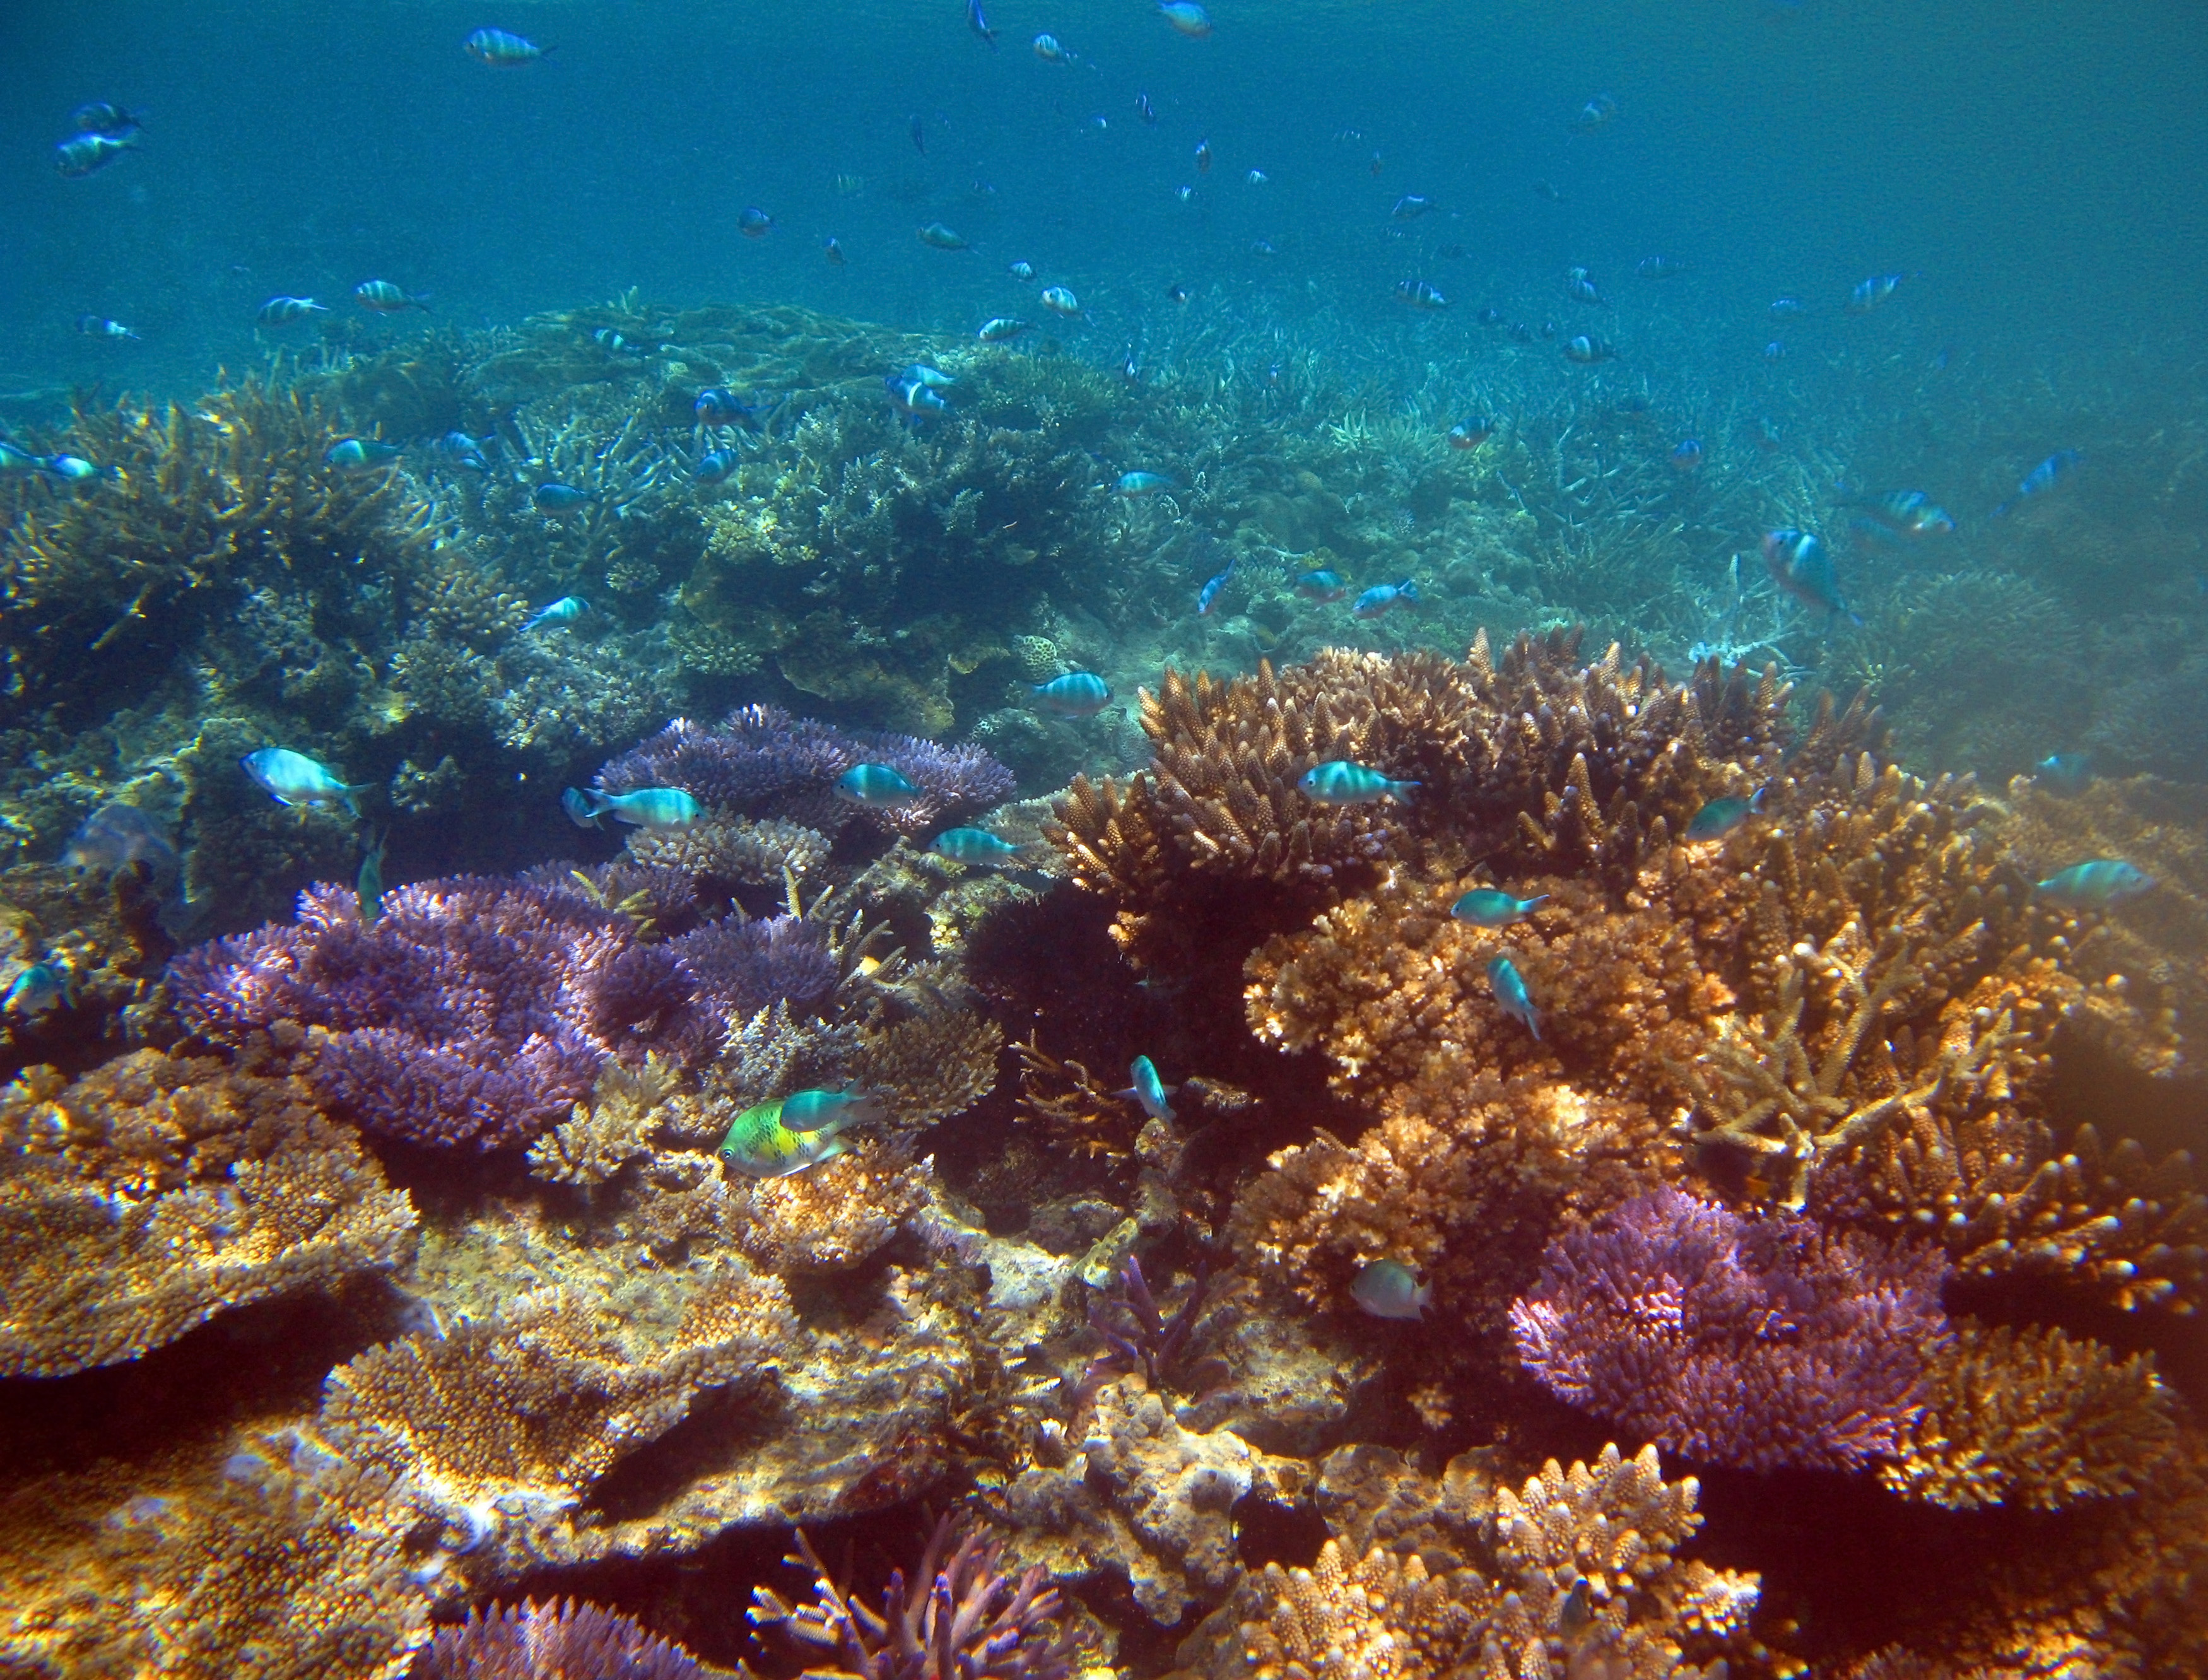 Free Stock image of Underwater Coral Reef with Several ...